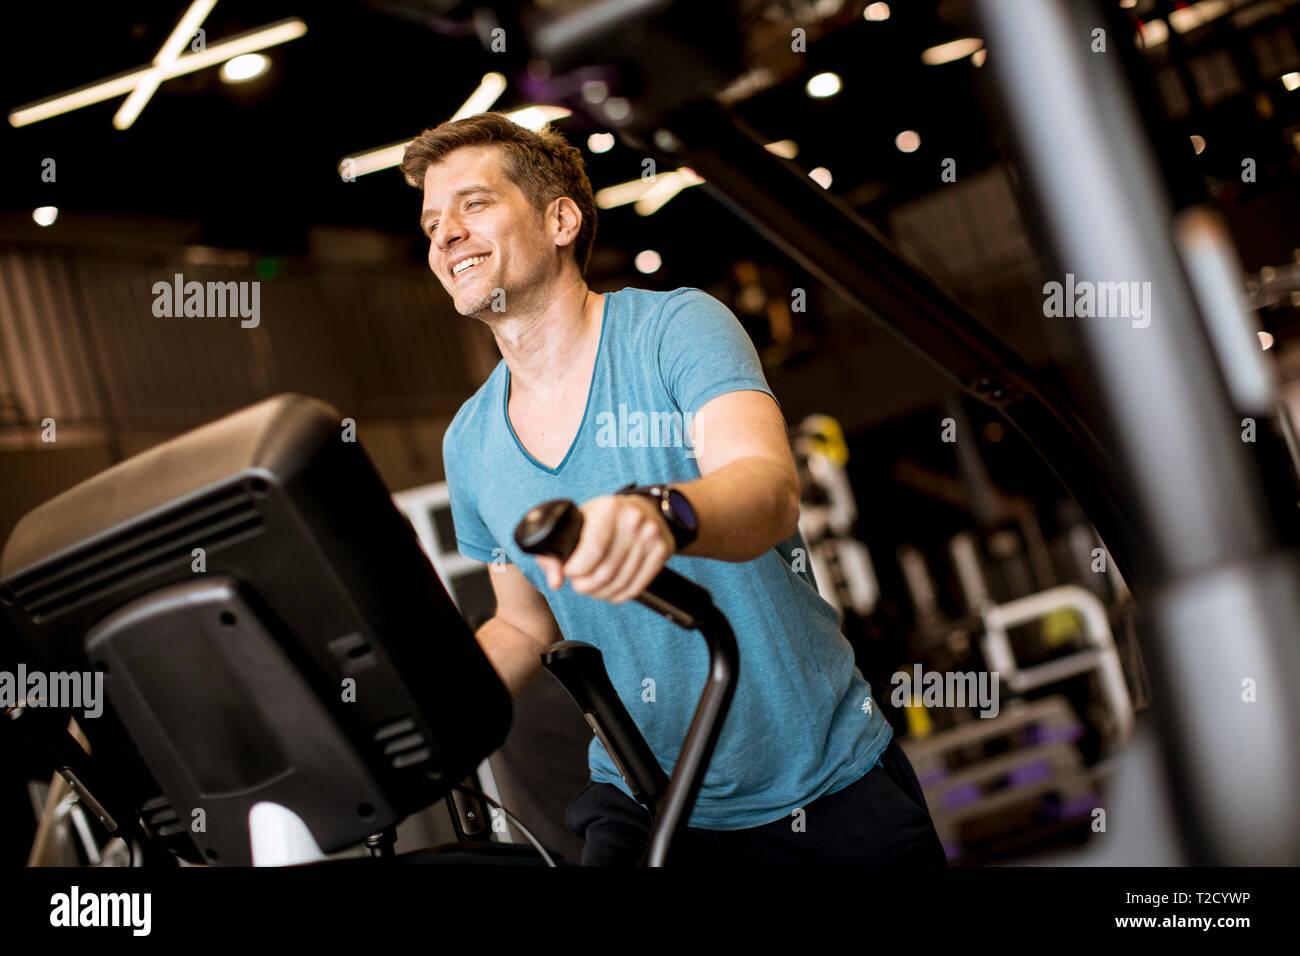 Young man doing exercise on elliptical cross trainer in sport fitness gym club - Stock Image